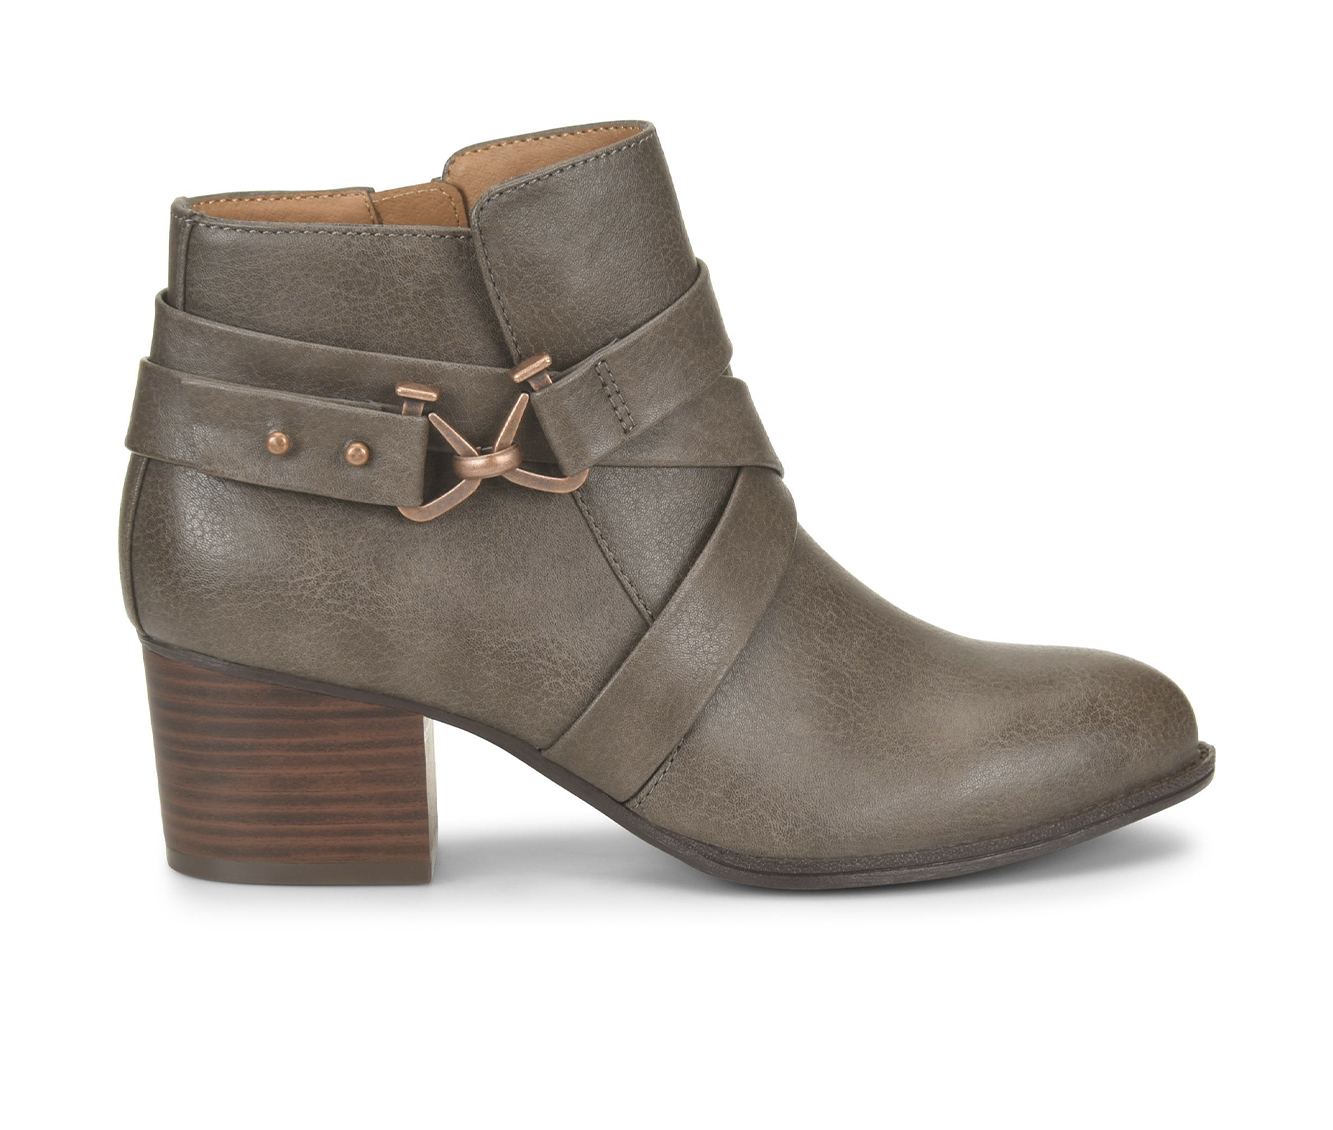 EuroSoft Witlee Women's Boots (Gray - Faux Leather)